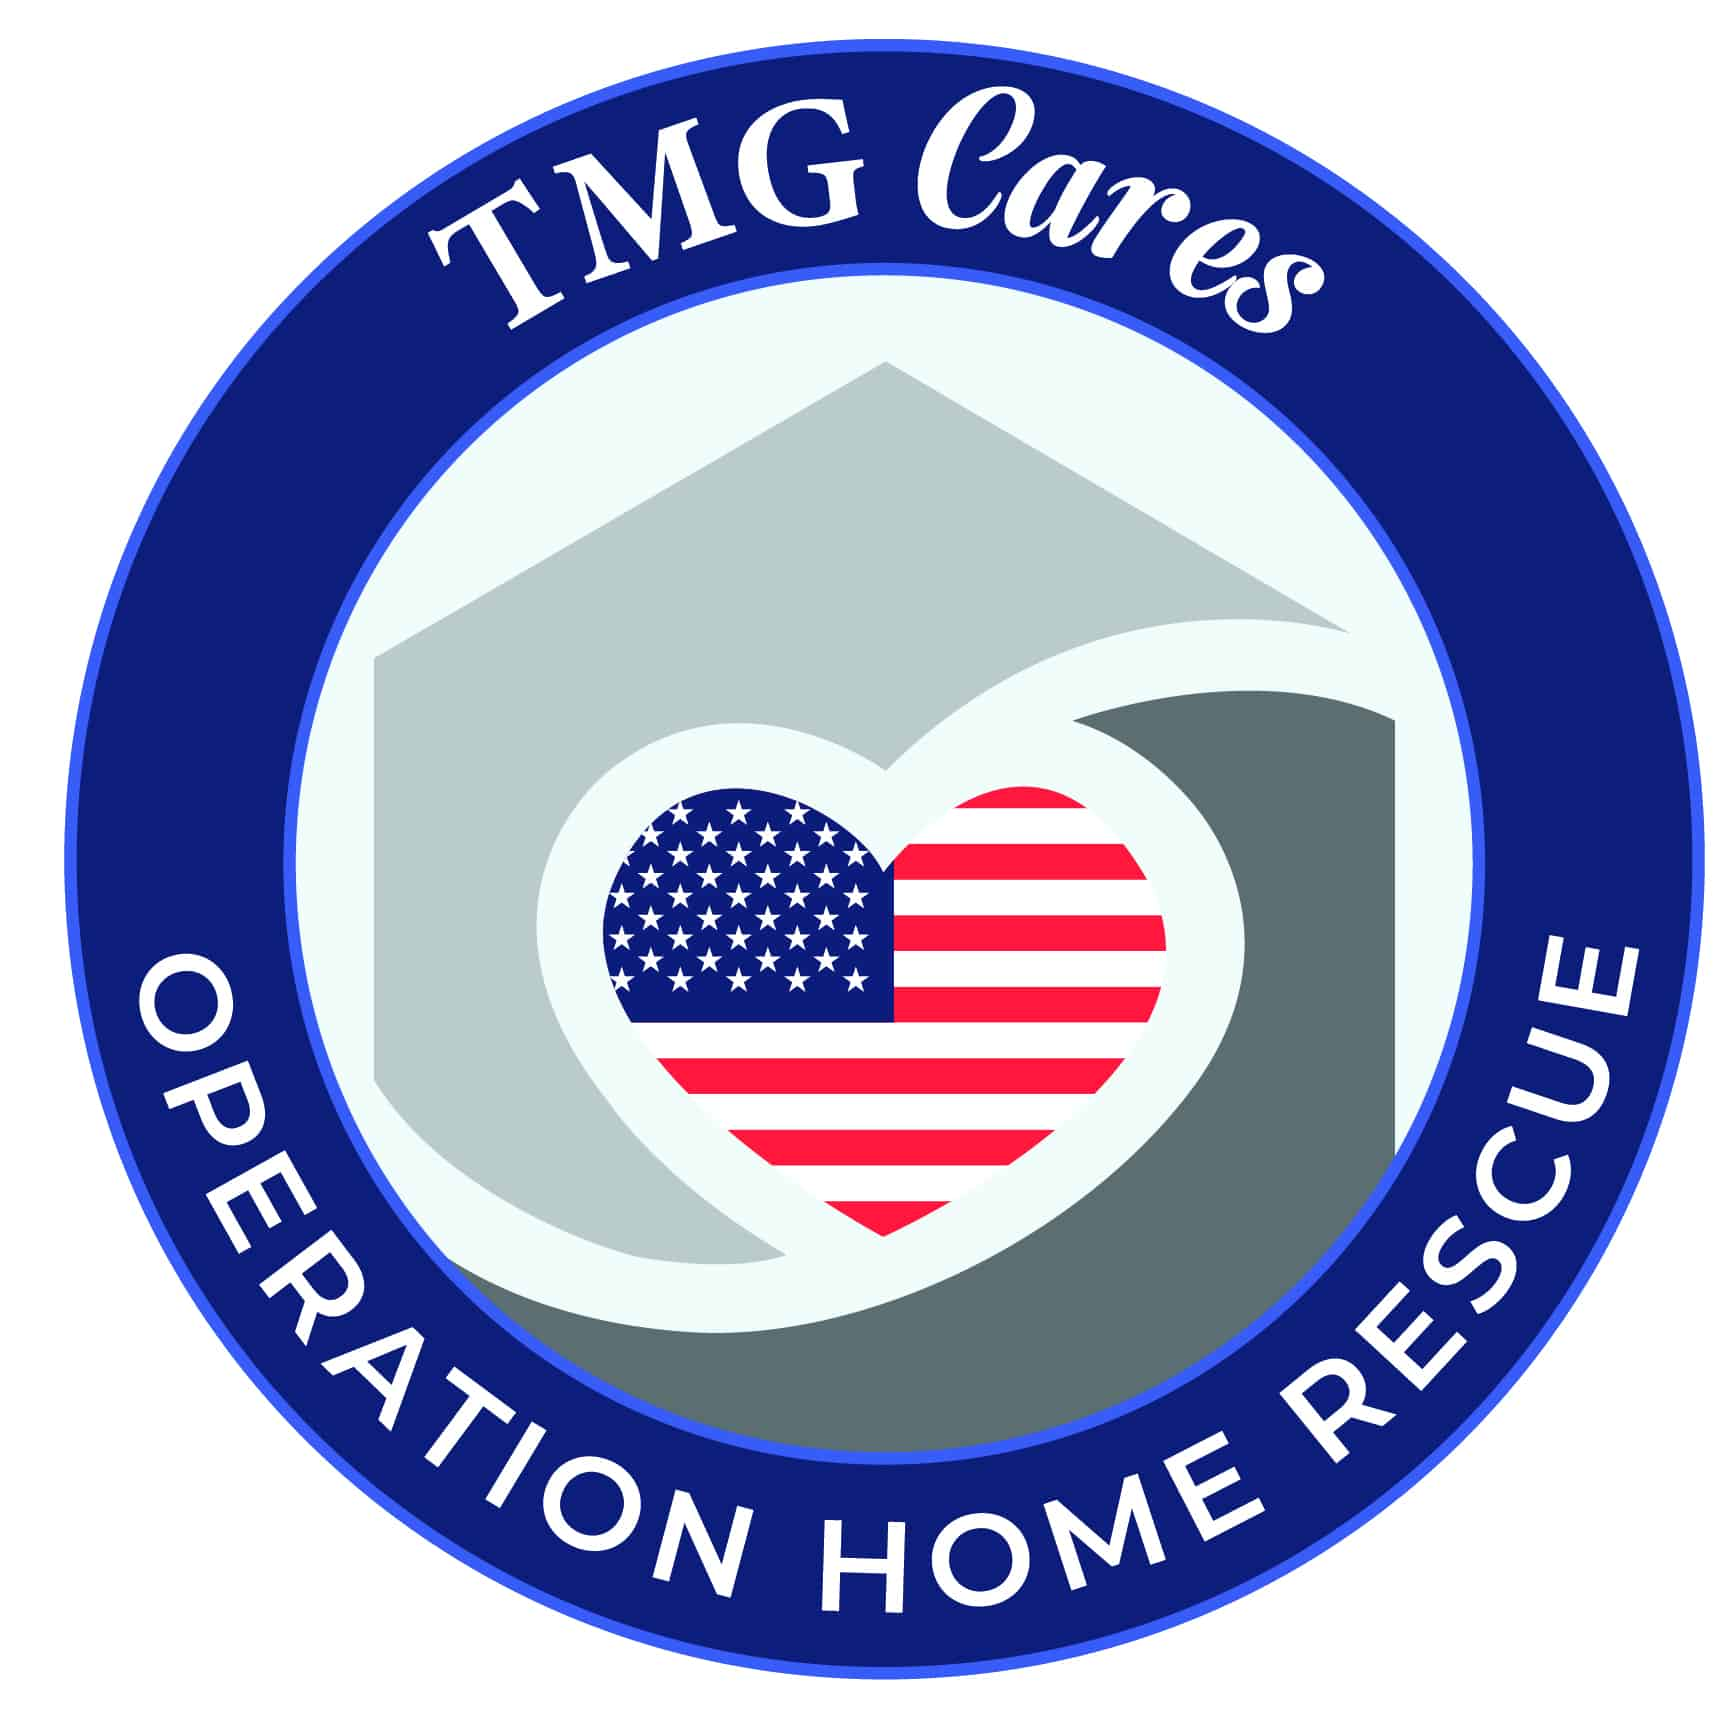 Operation Home Rescue